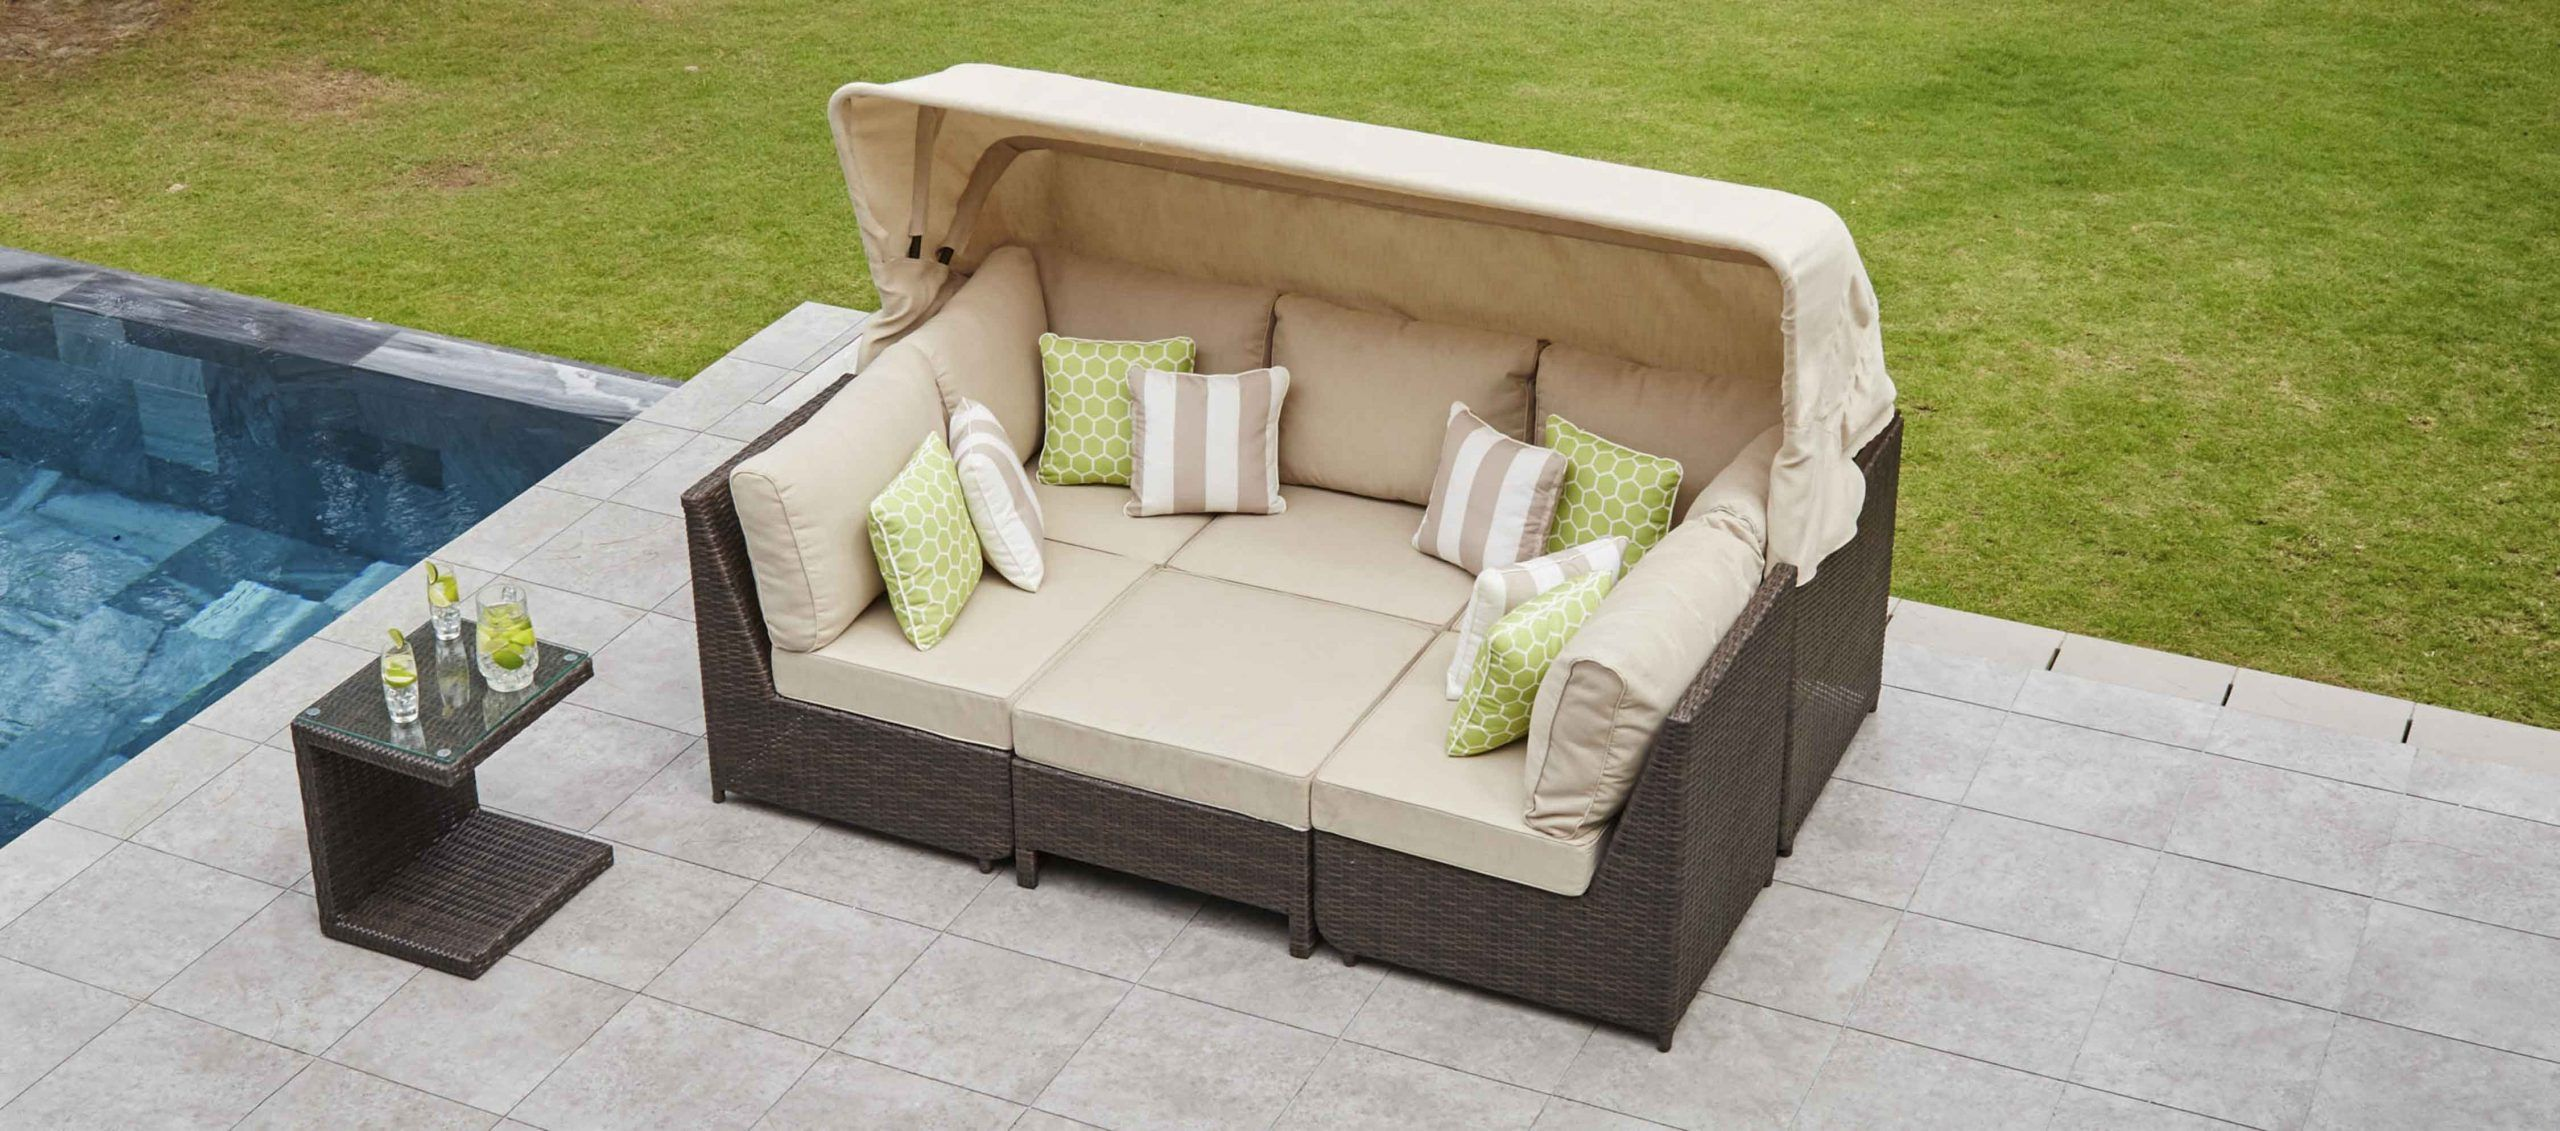 A Comprehensive Overview On Home Decoration In 2020 Daybed Sofa Corner Sofa Corner Sofa Outdoor